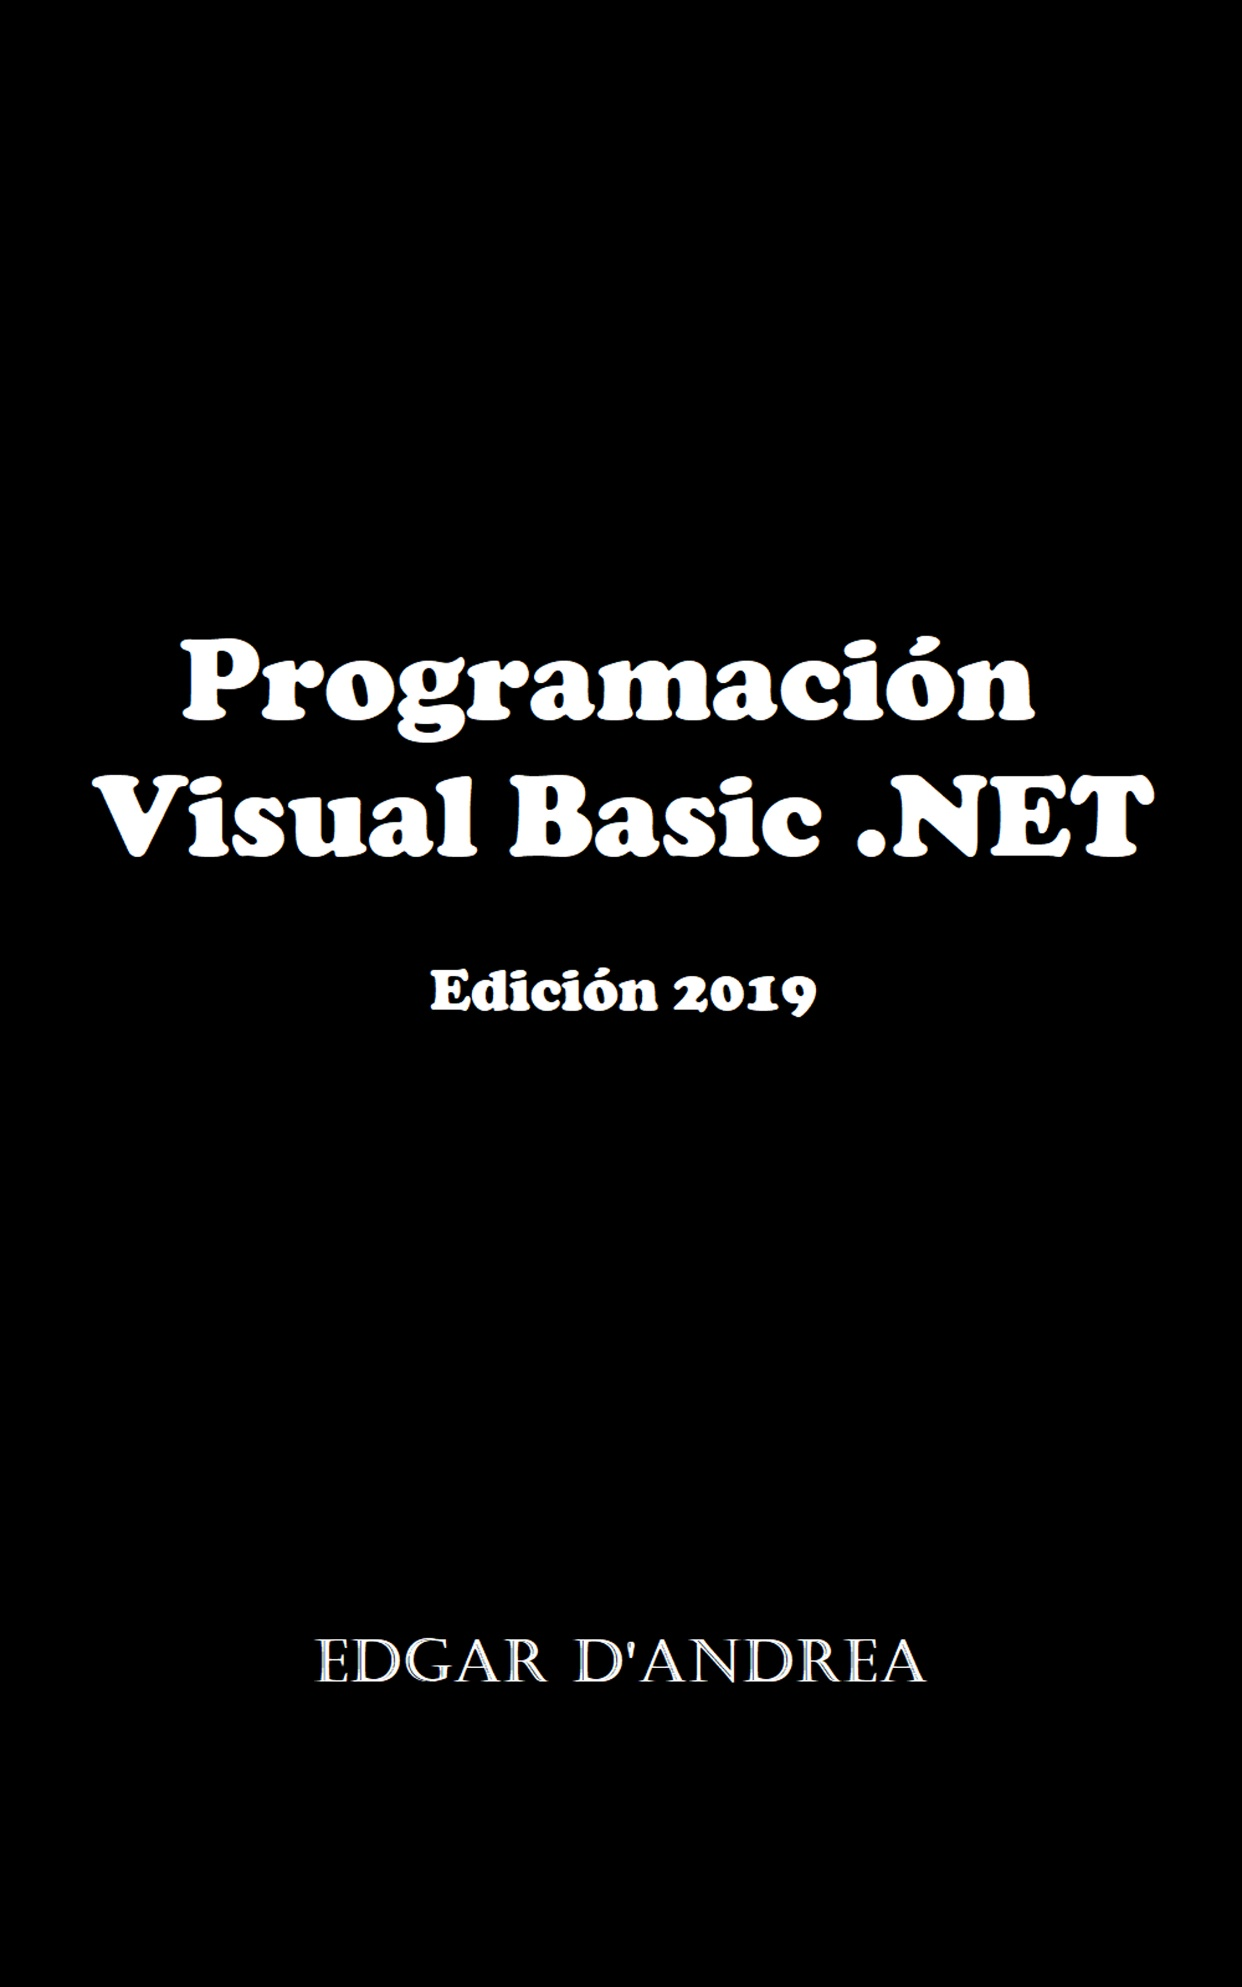 Programación Visual Basic .NET